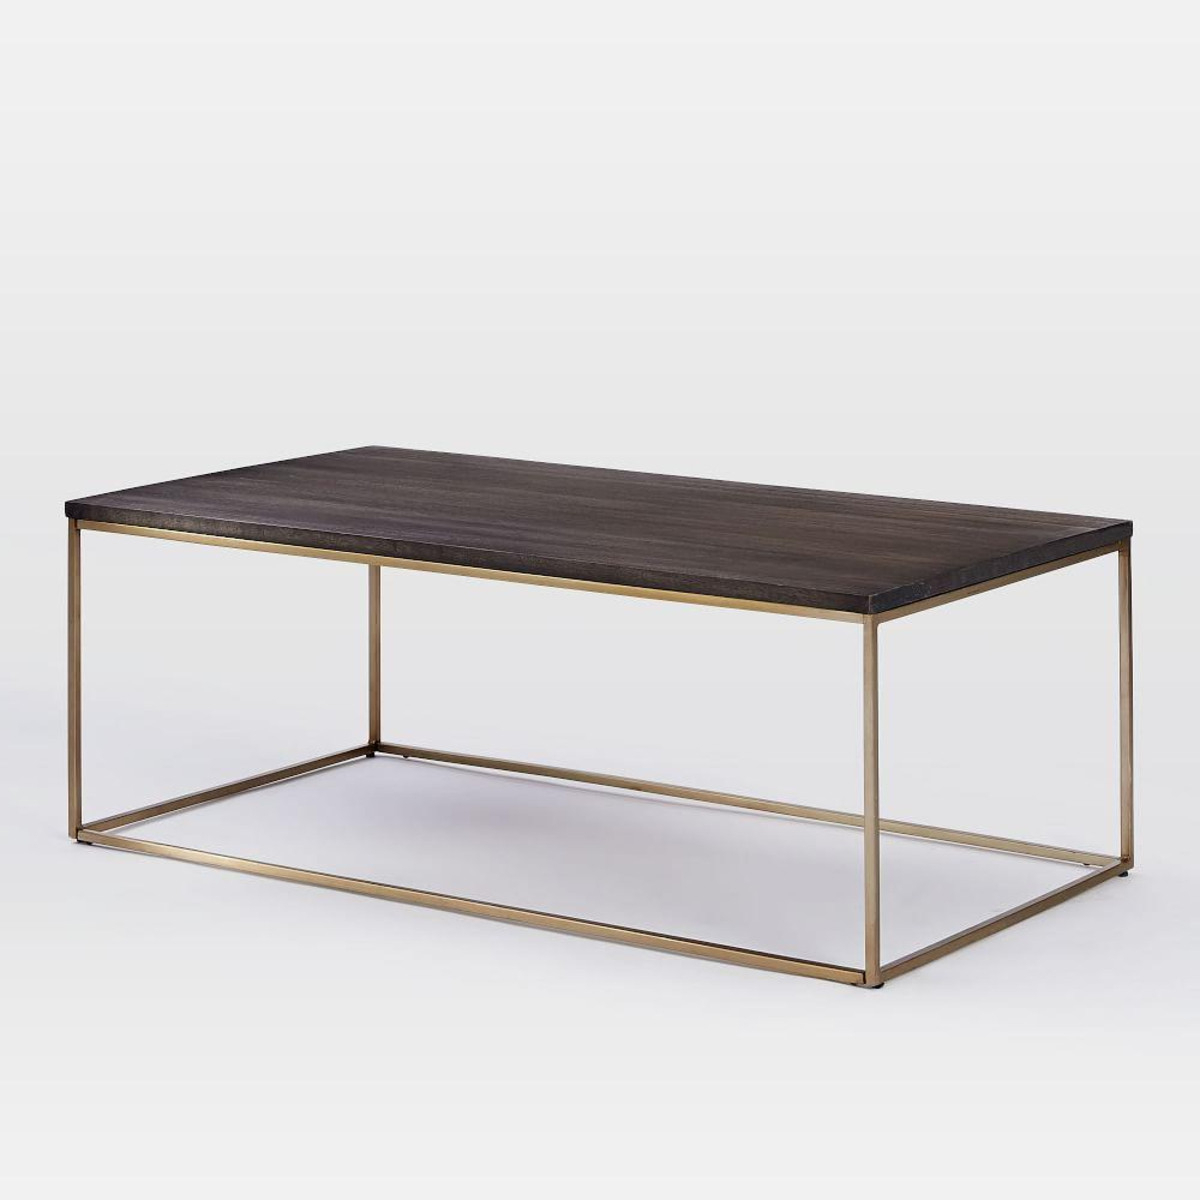 Preferred Brass Coffee Table With Glass Top Taroudant Industrial Loft Hammered In Darbuka Brass Coffee Tables (View 19 of 20)